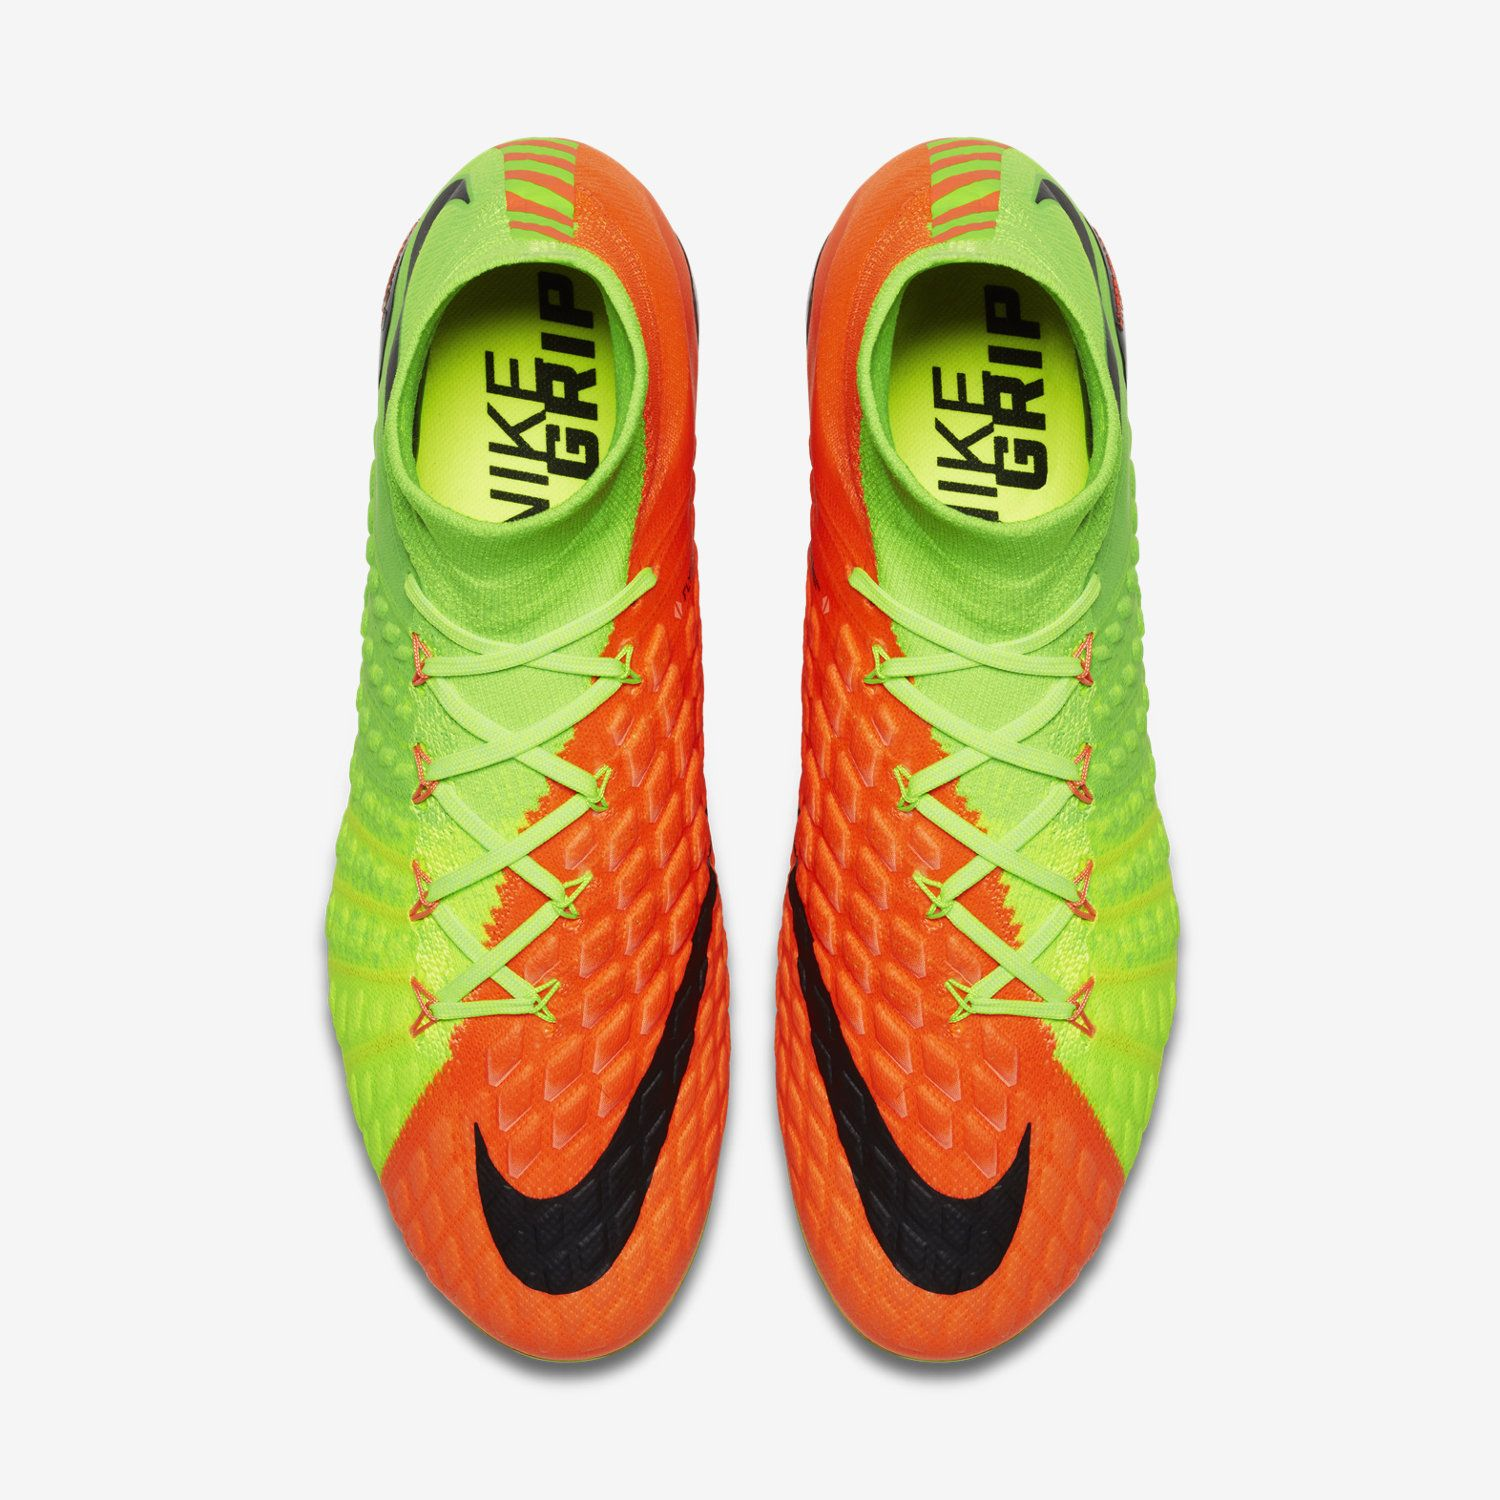 Buy 1702 Nike Mercurial Superfly V FG Men\u0027s Soccer Cleats Football Shoes at  online store